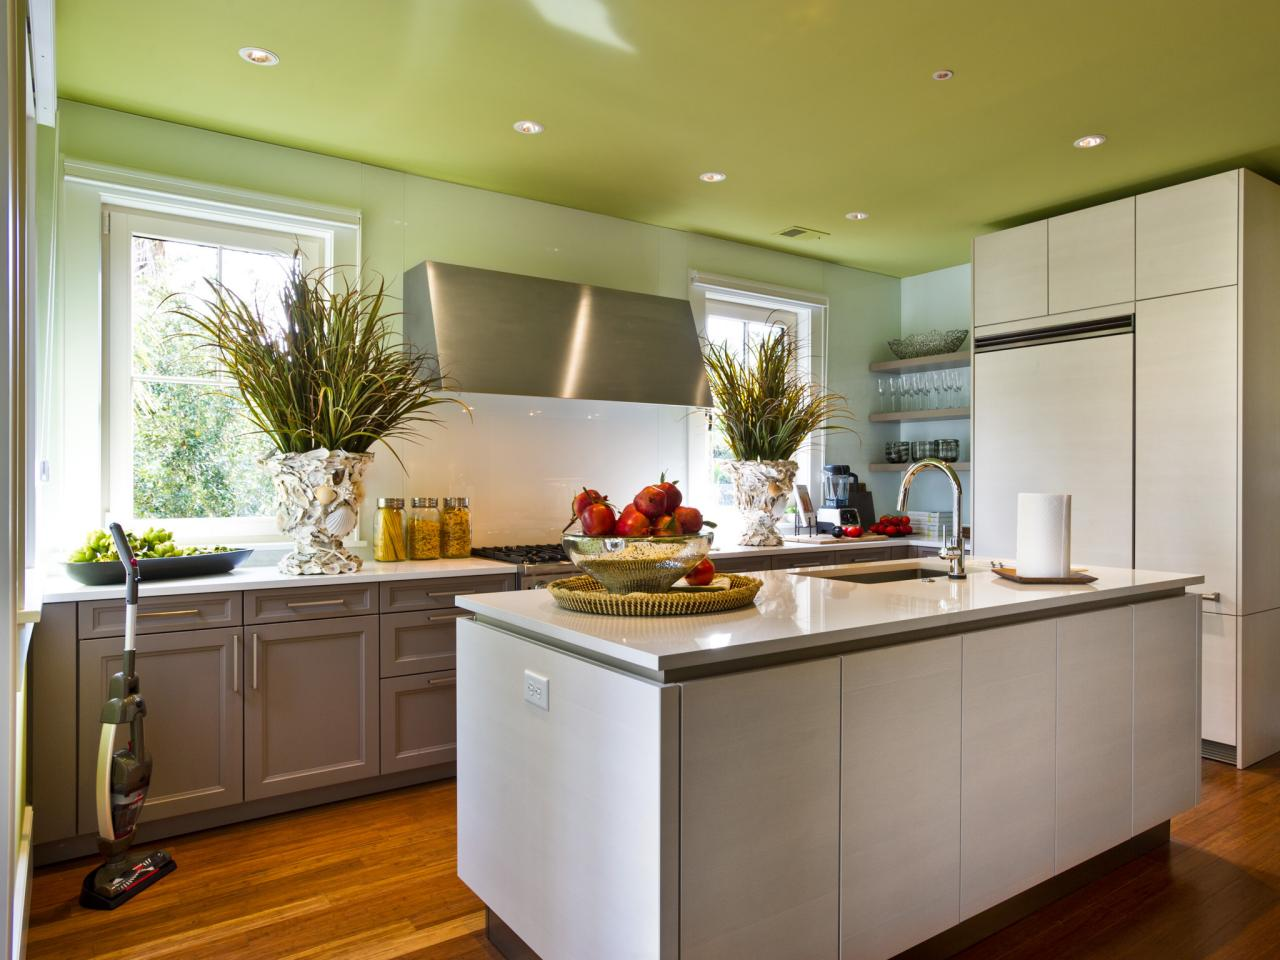 Painting kitchen ceilings pictures ideas tips from for Beautiful kitchen units designs